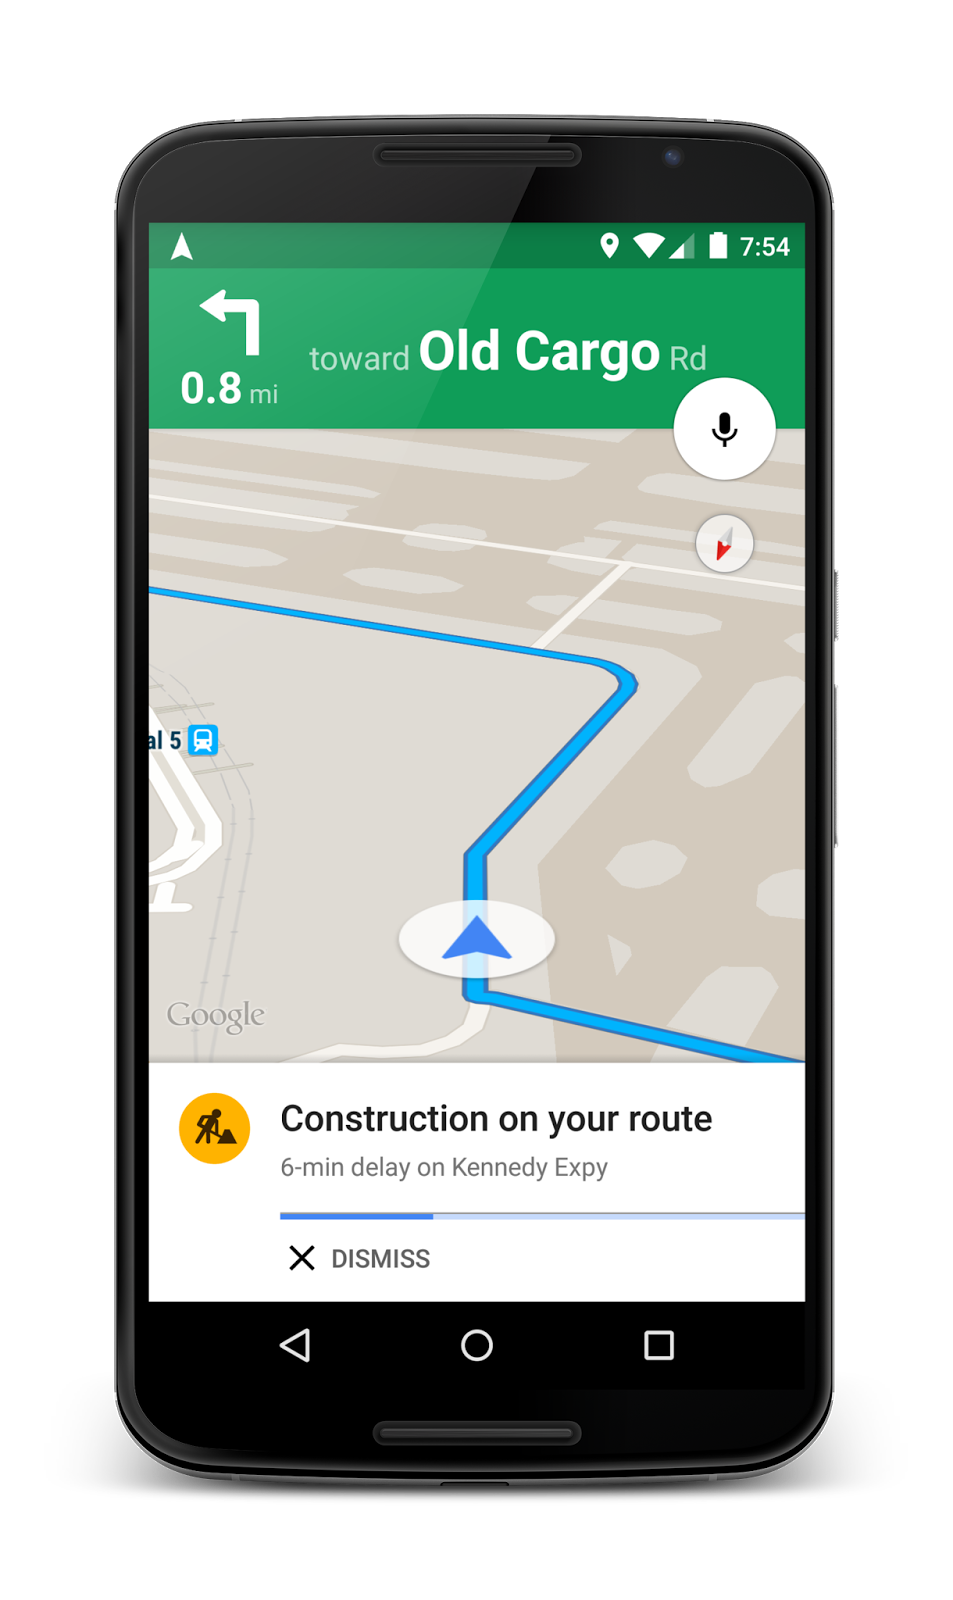 Google Lat Long: Don't let traffic slow you down this ... on gppgle maps, microsoft maps, googie maps, stanford university maps, search maps, gogole maps, waze maps, amazon fire phone maps, googlr maps, iphone maps, goolge maps, ipad maps, aerial maps, aeronautical maps, android maps, online maps, bing maps, topographic maps, msn maps, road map usa states maps,